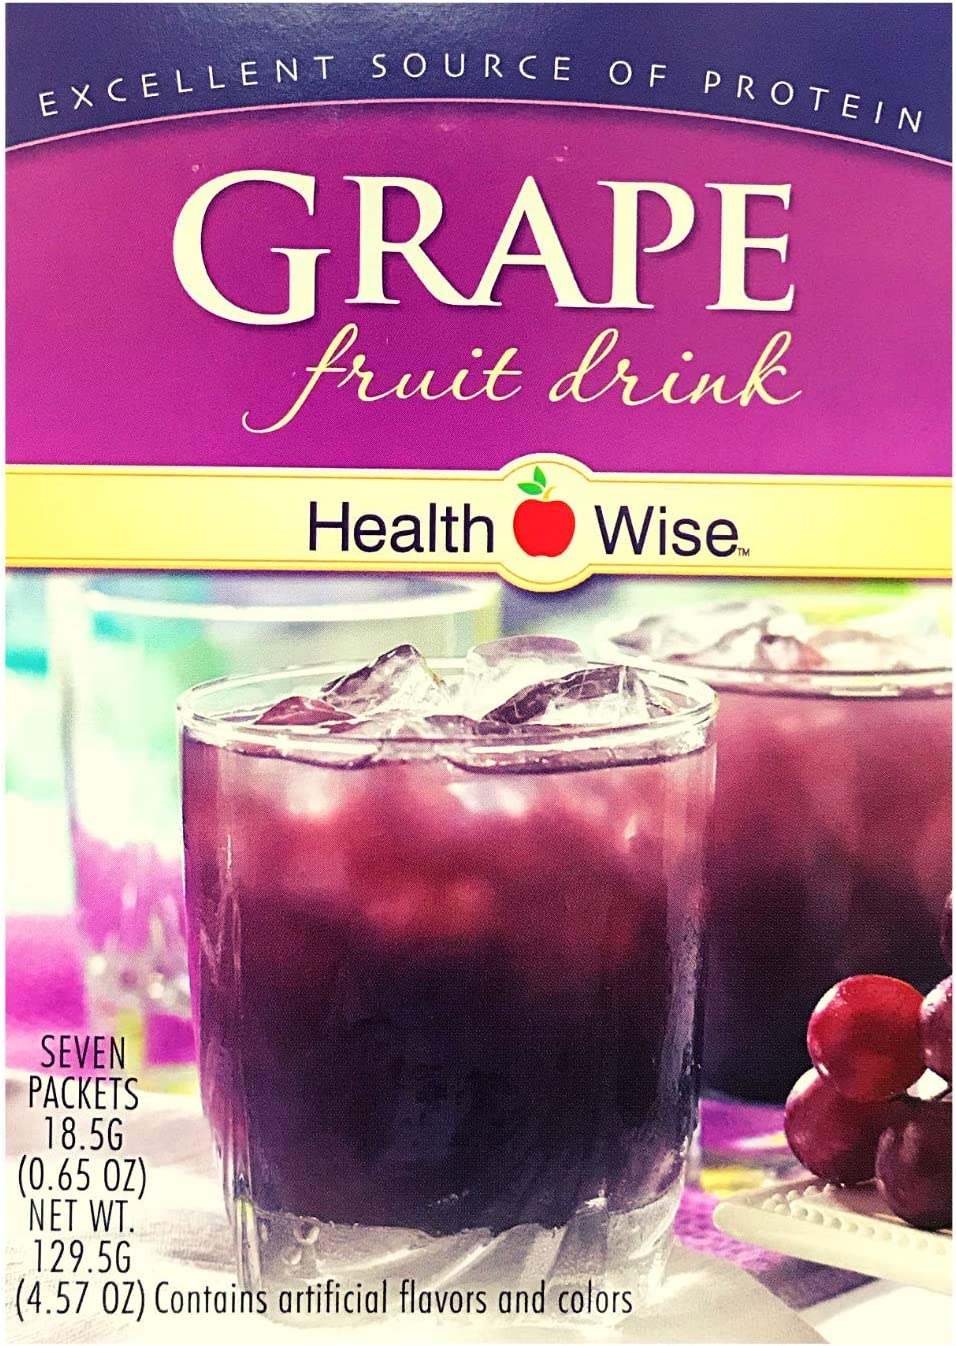 Healthwise - Grape Diet Fruit Drink | Healthy Protein Drink, Appetite Suppressant | High Protein, Fat Free, Low Carb, Low Calorie, Sugar Free (7/Box)